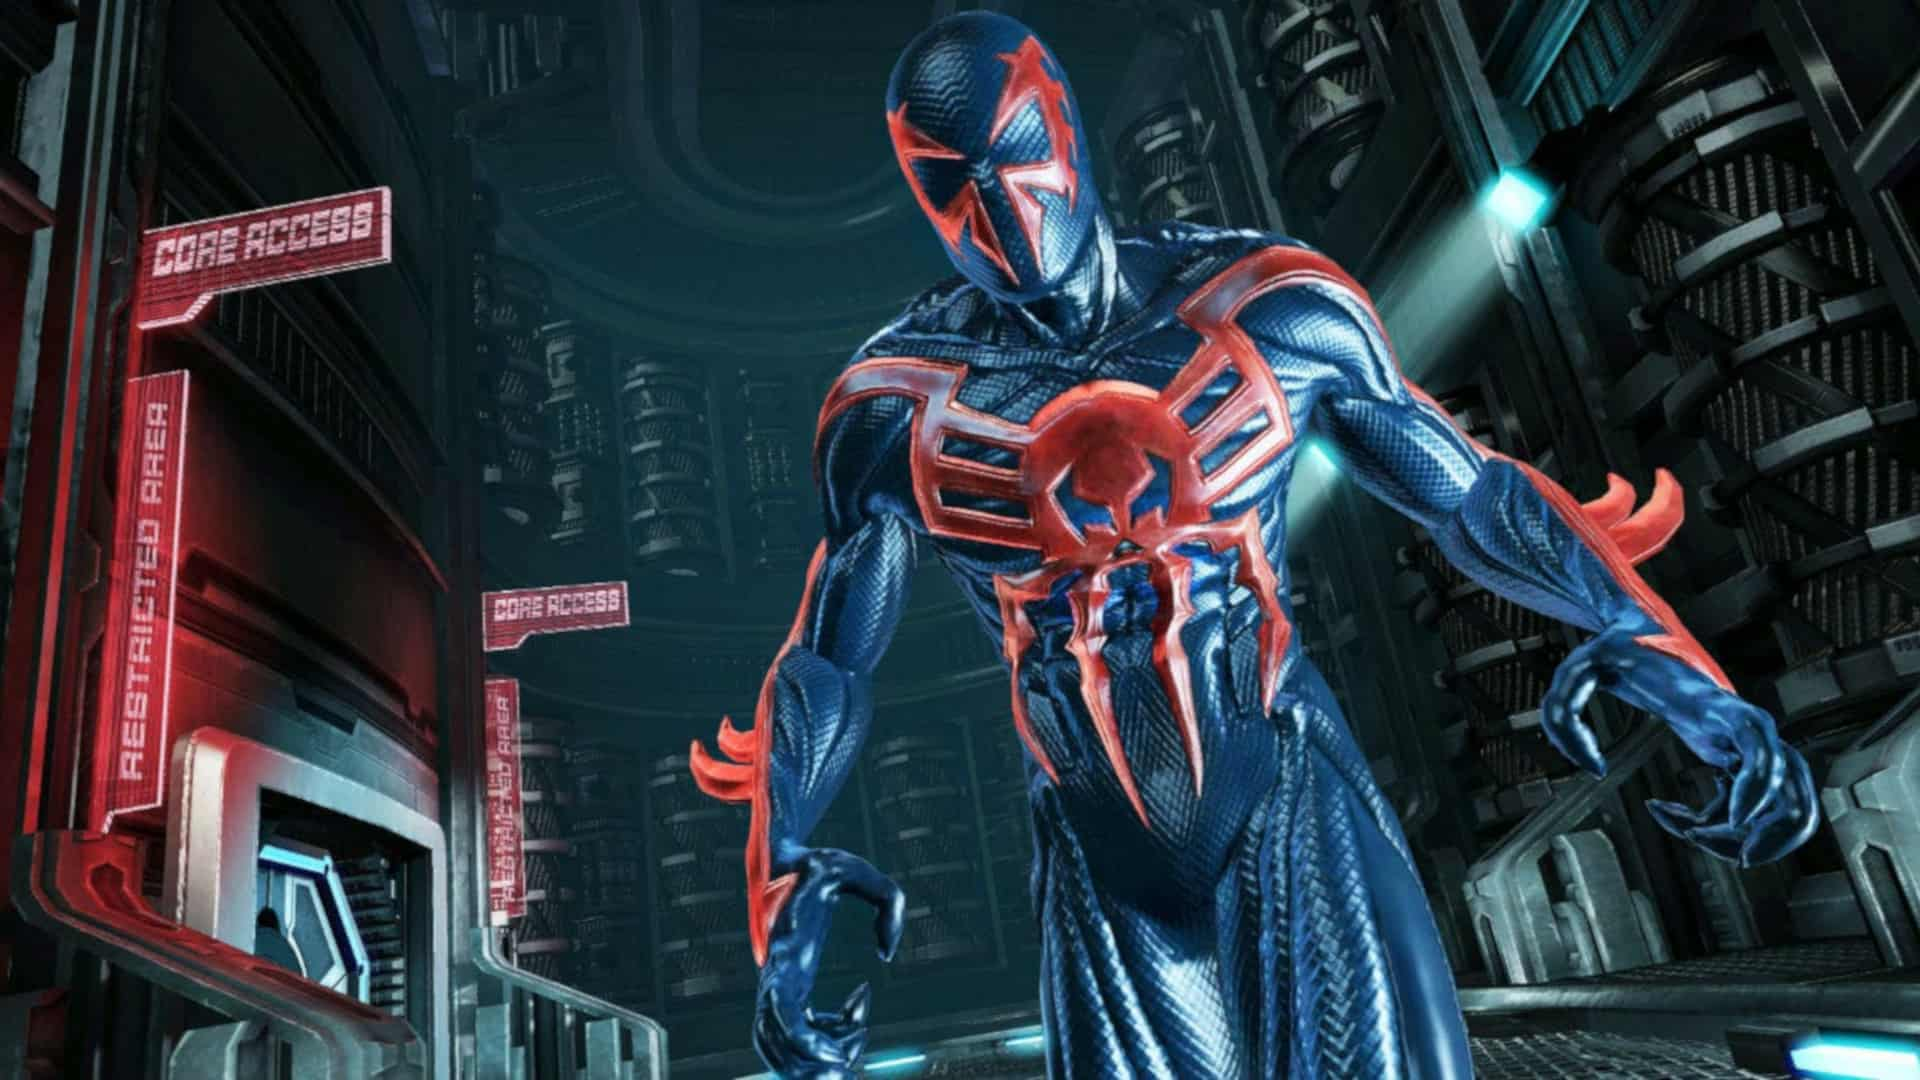 Spiderman 2099: Eight Spider-Man Suits That We Want To See In Marvel's